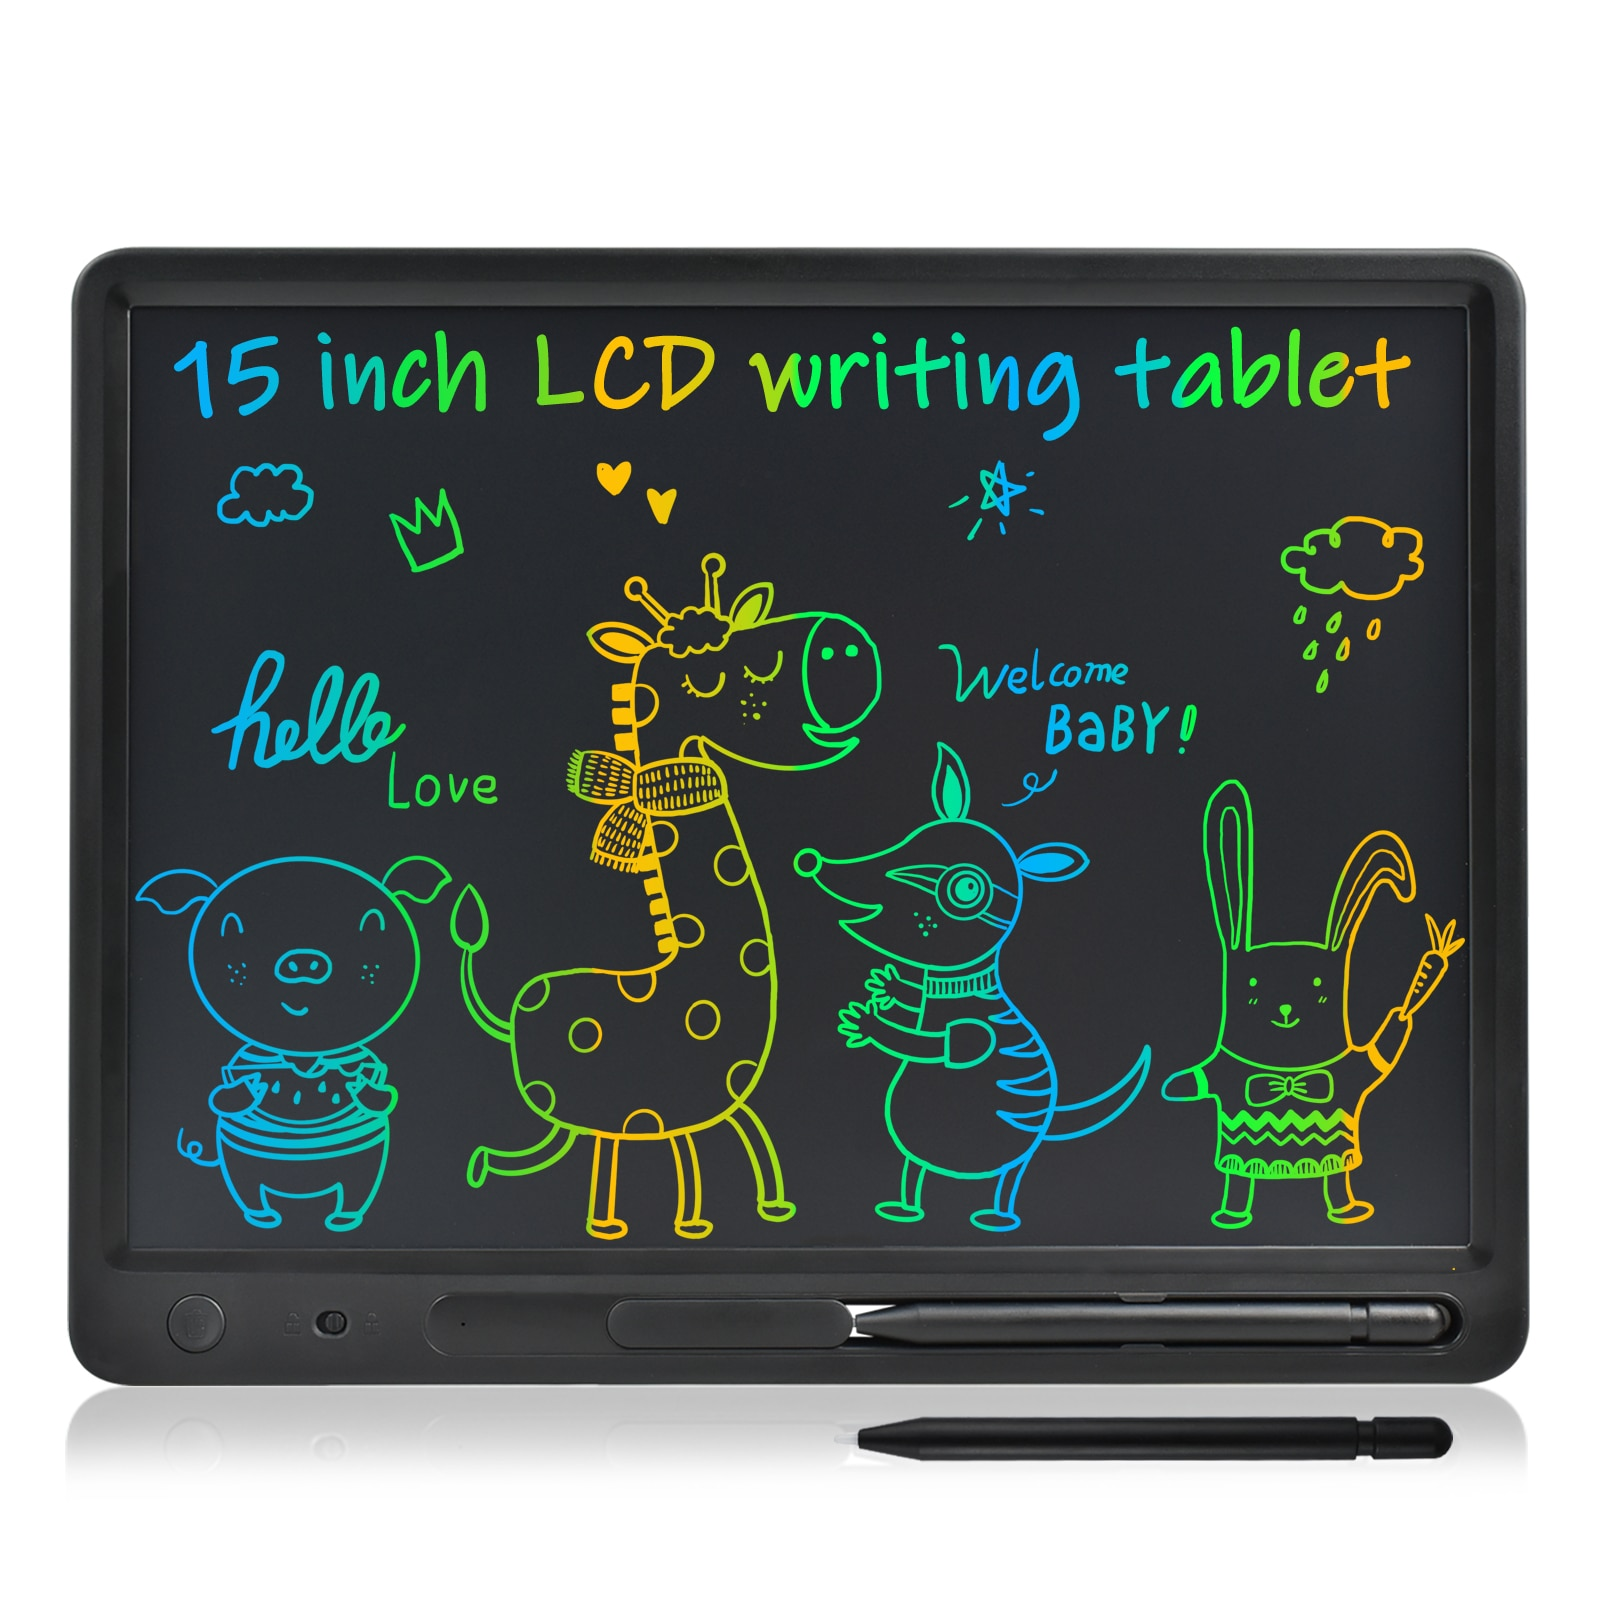 15/16/21Inch LCD Writing Tablet Drawing Graffiti Doodle Board Toys Smart Paper For Kids&Adults Birth